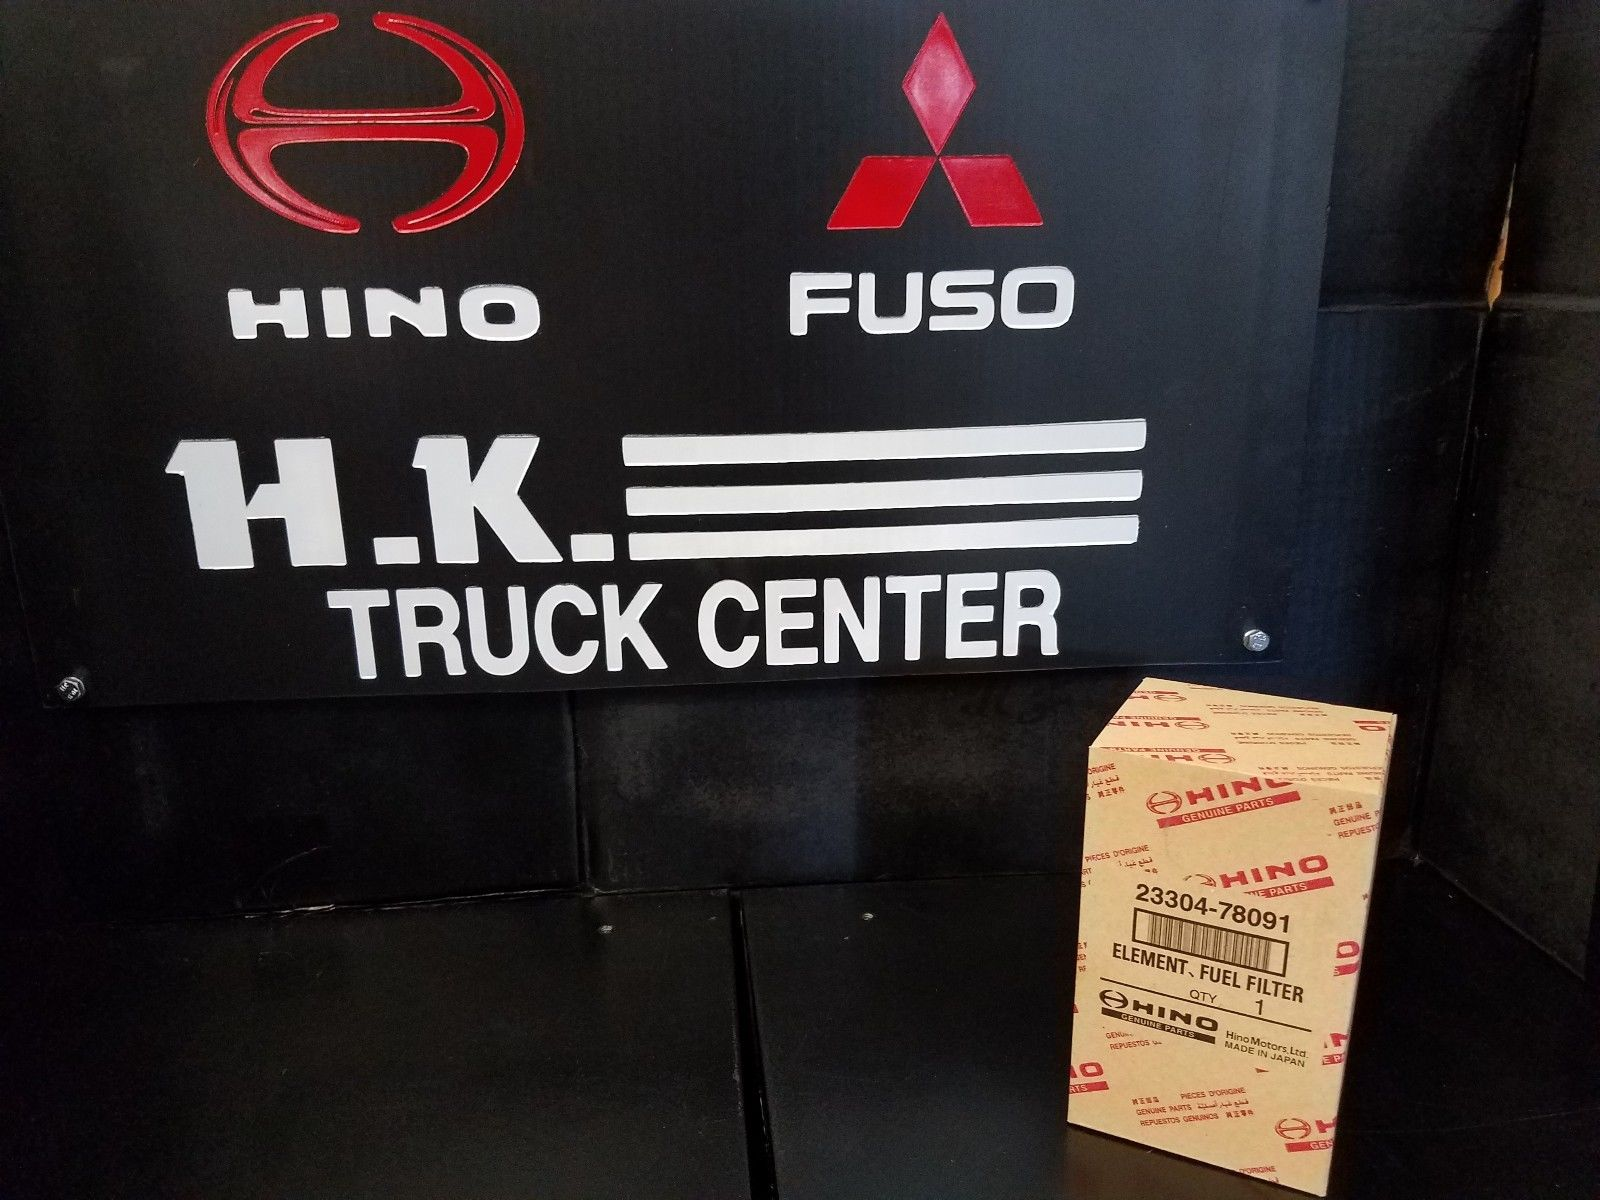 hight resolution of hino fuel filter element for 155 195 trucks 2330478091